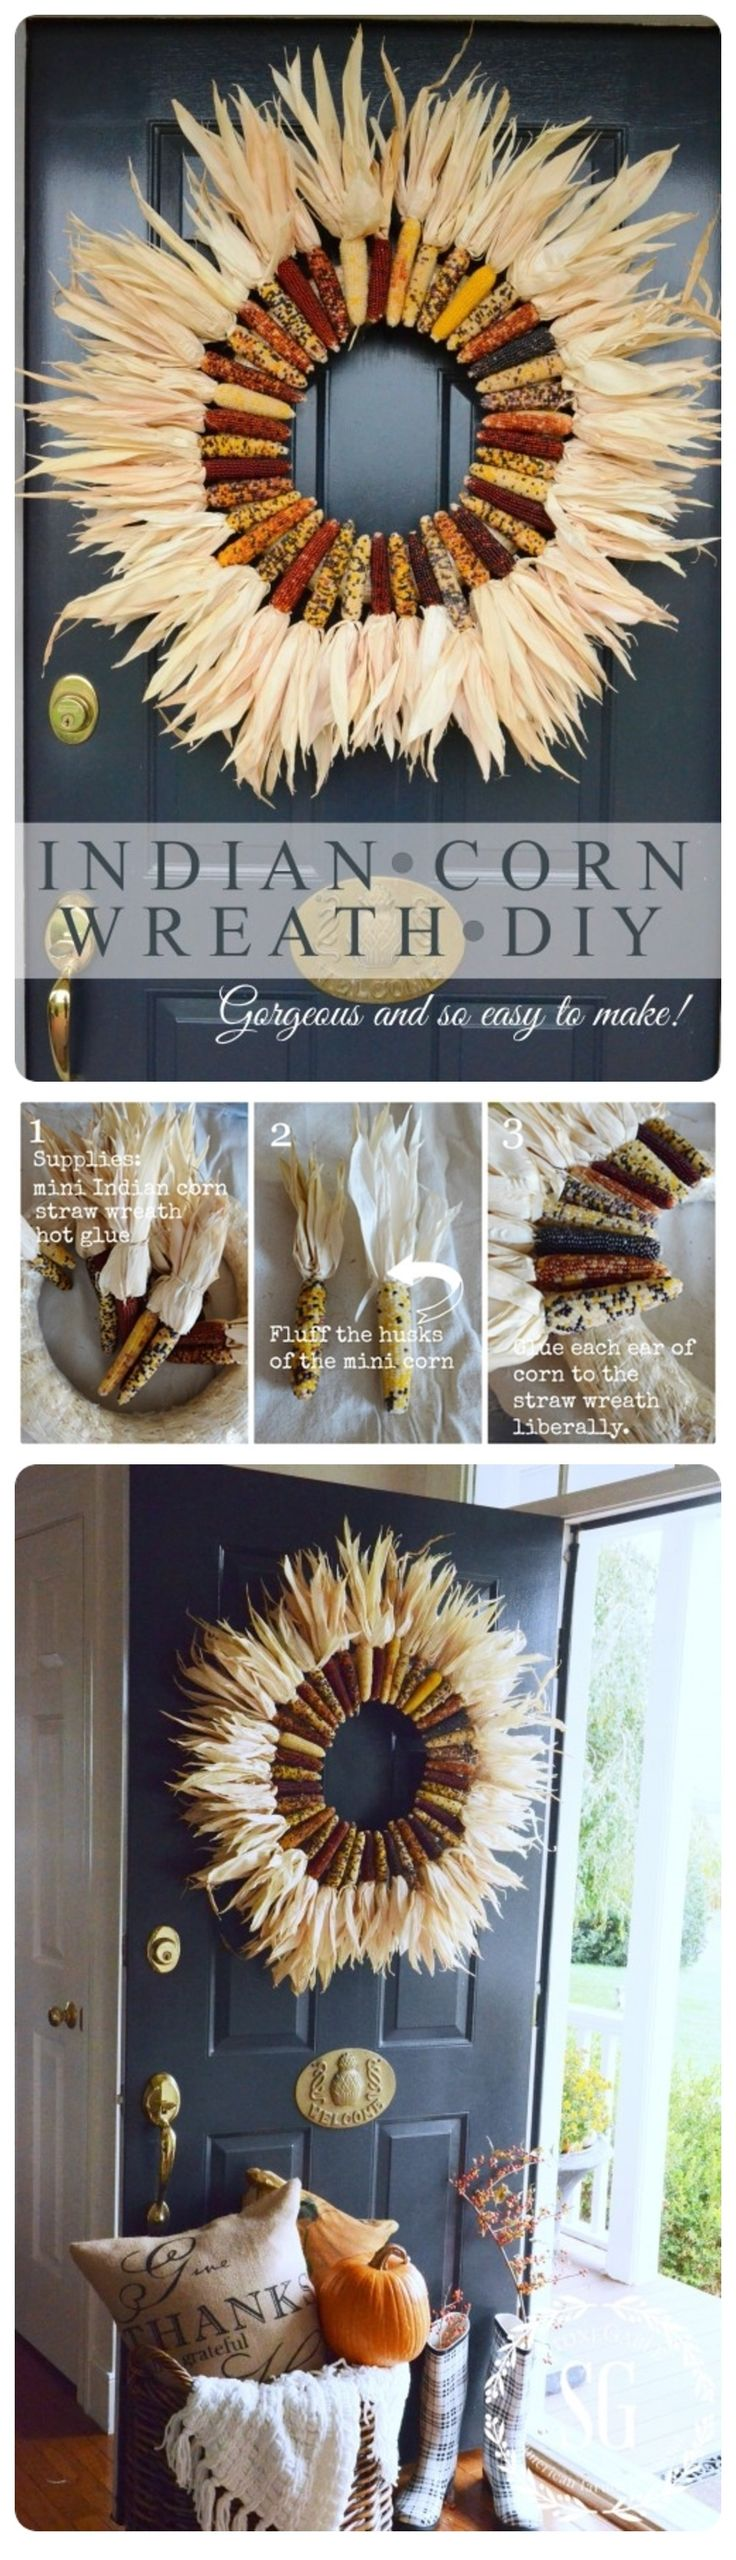 DIY Indian Corn Wreath